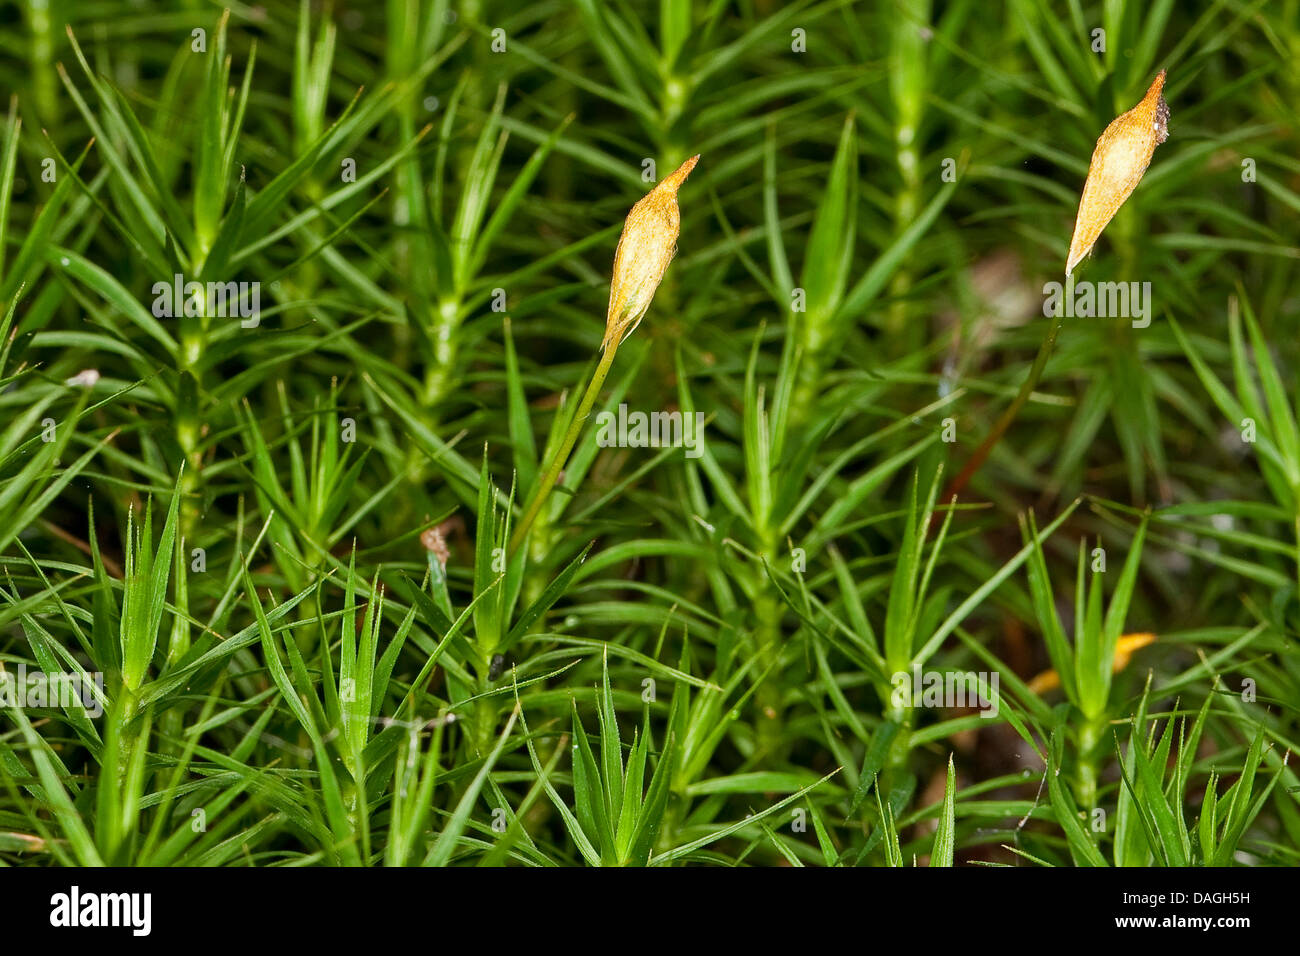 hight resolution of hair cap moss polytrichum commune with sporangia germany stock image